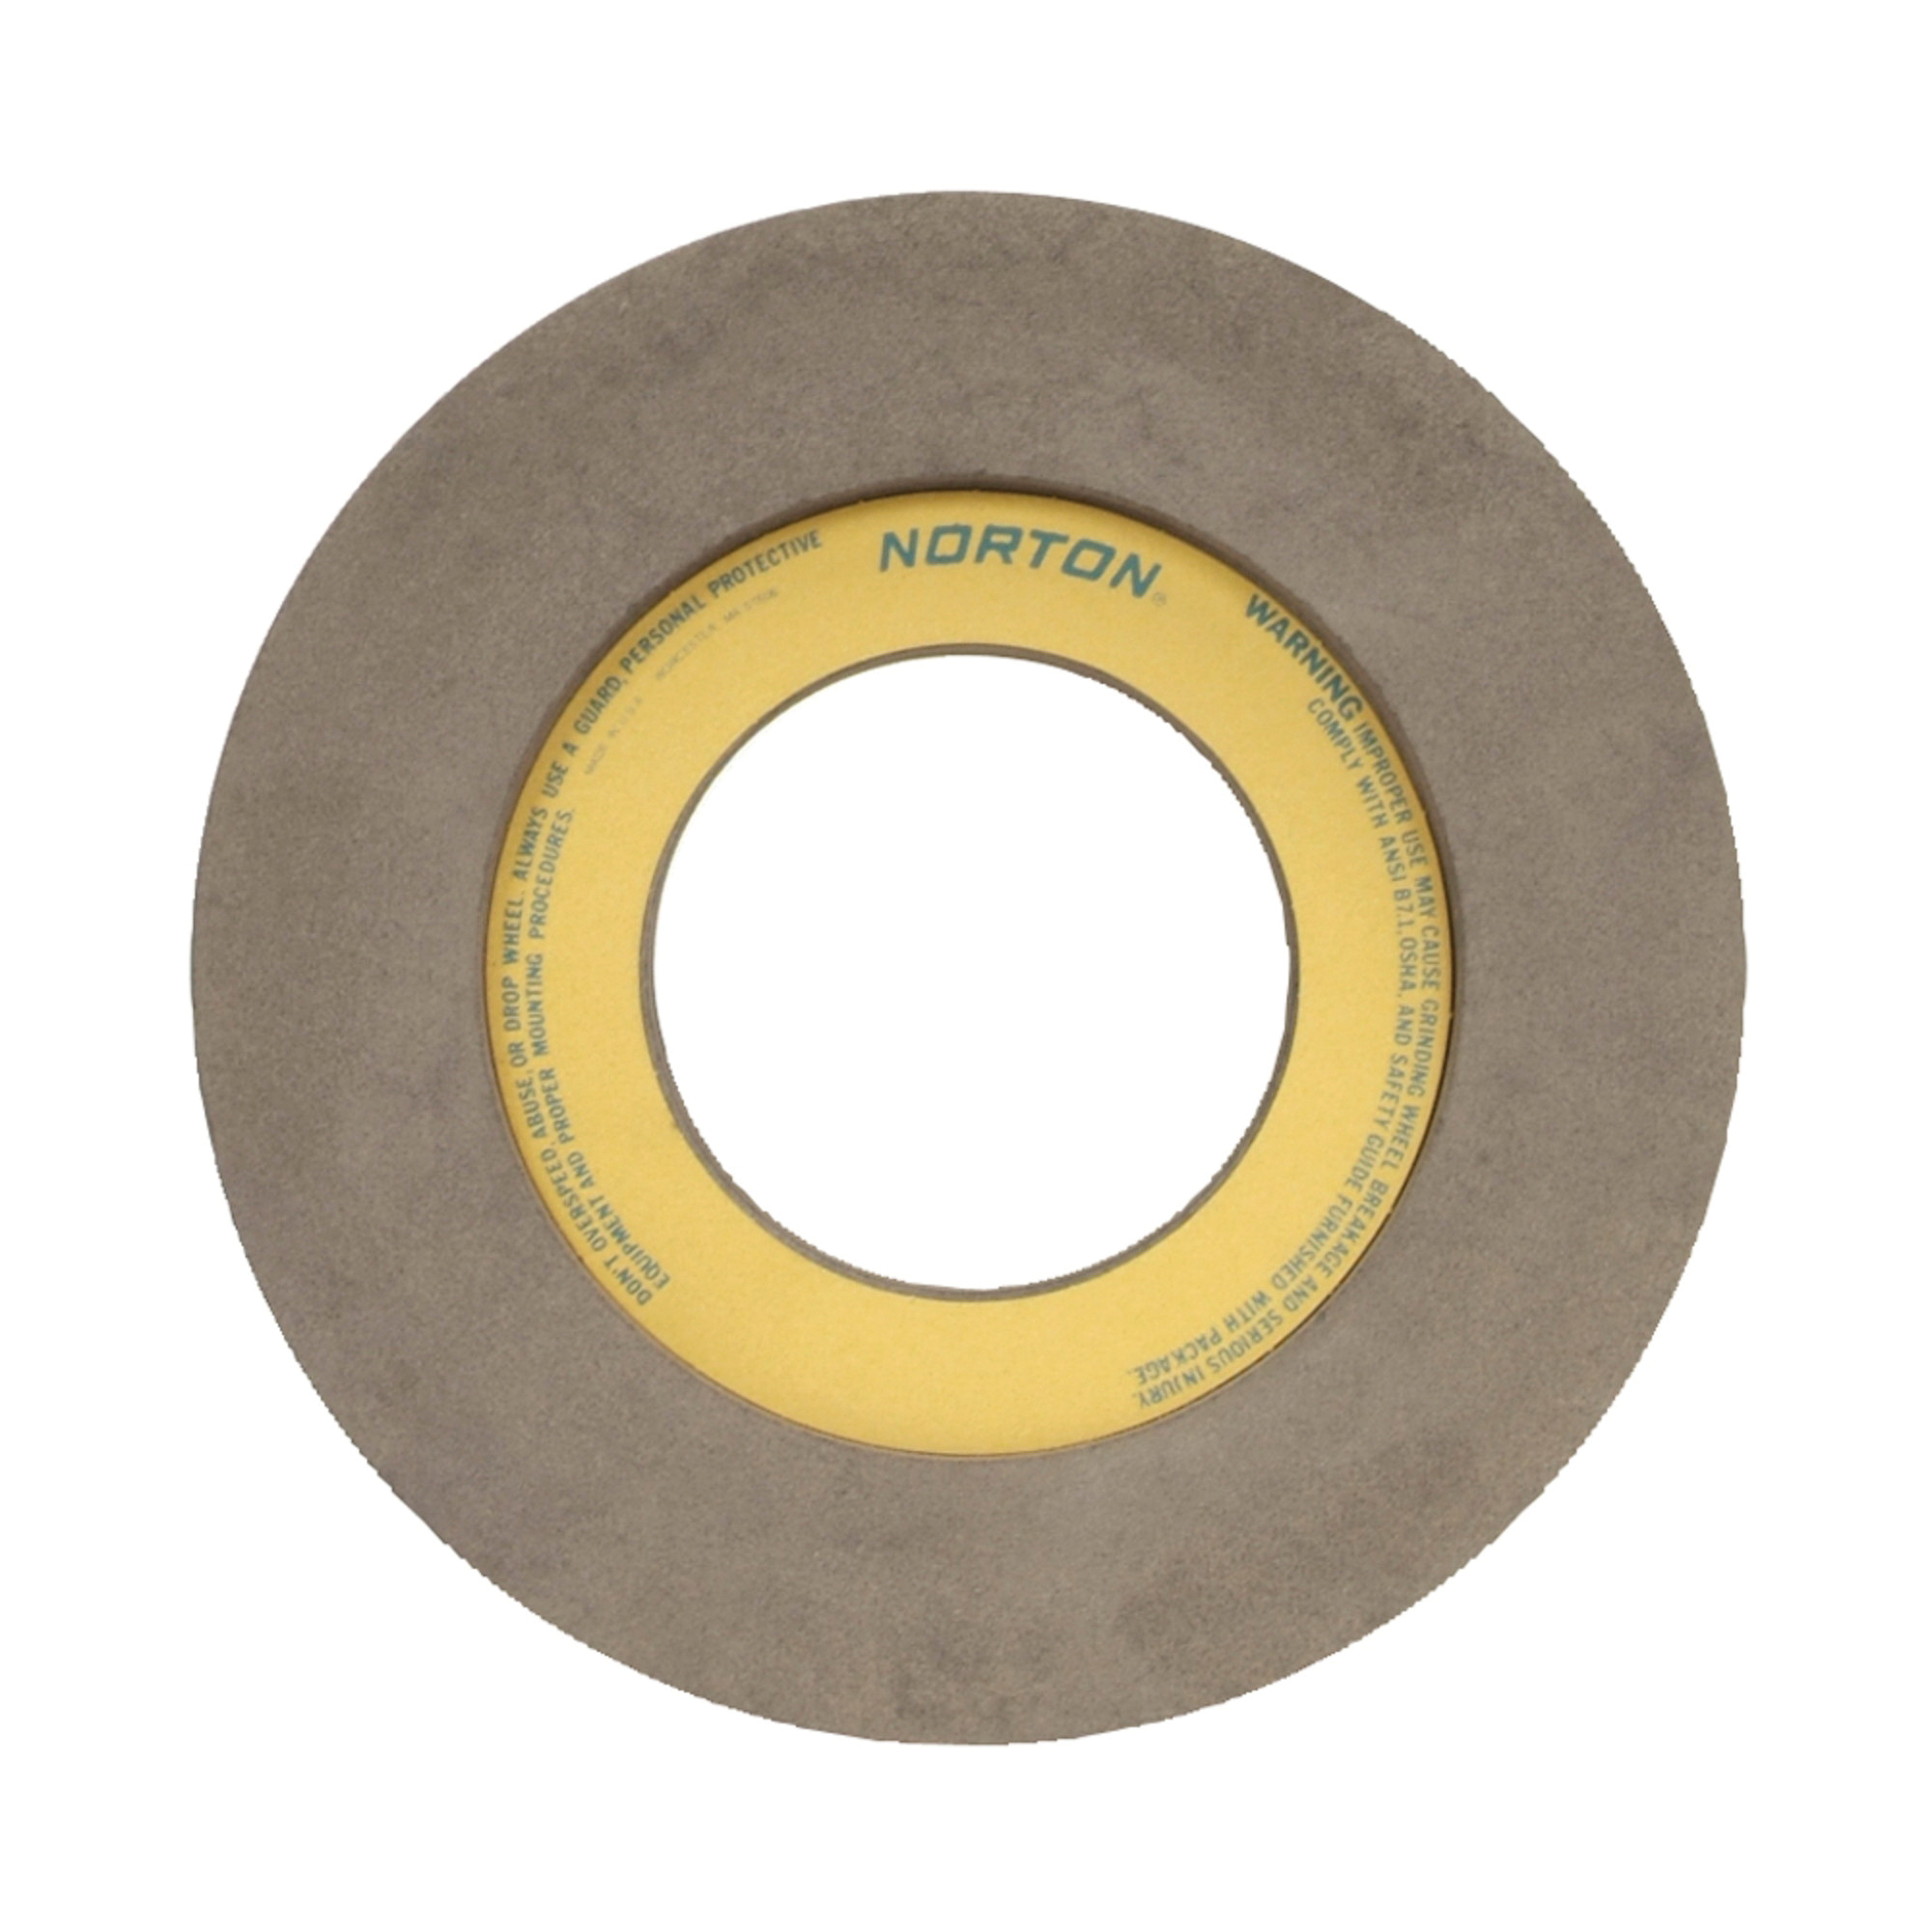 Norton® 66253322859 57A Centerless Feed Wheel, 14 in Dia x 8 in W, 5 in Hole, Type 7, 80 Grit